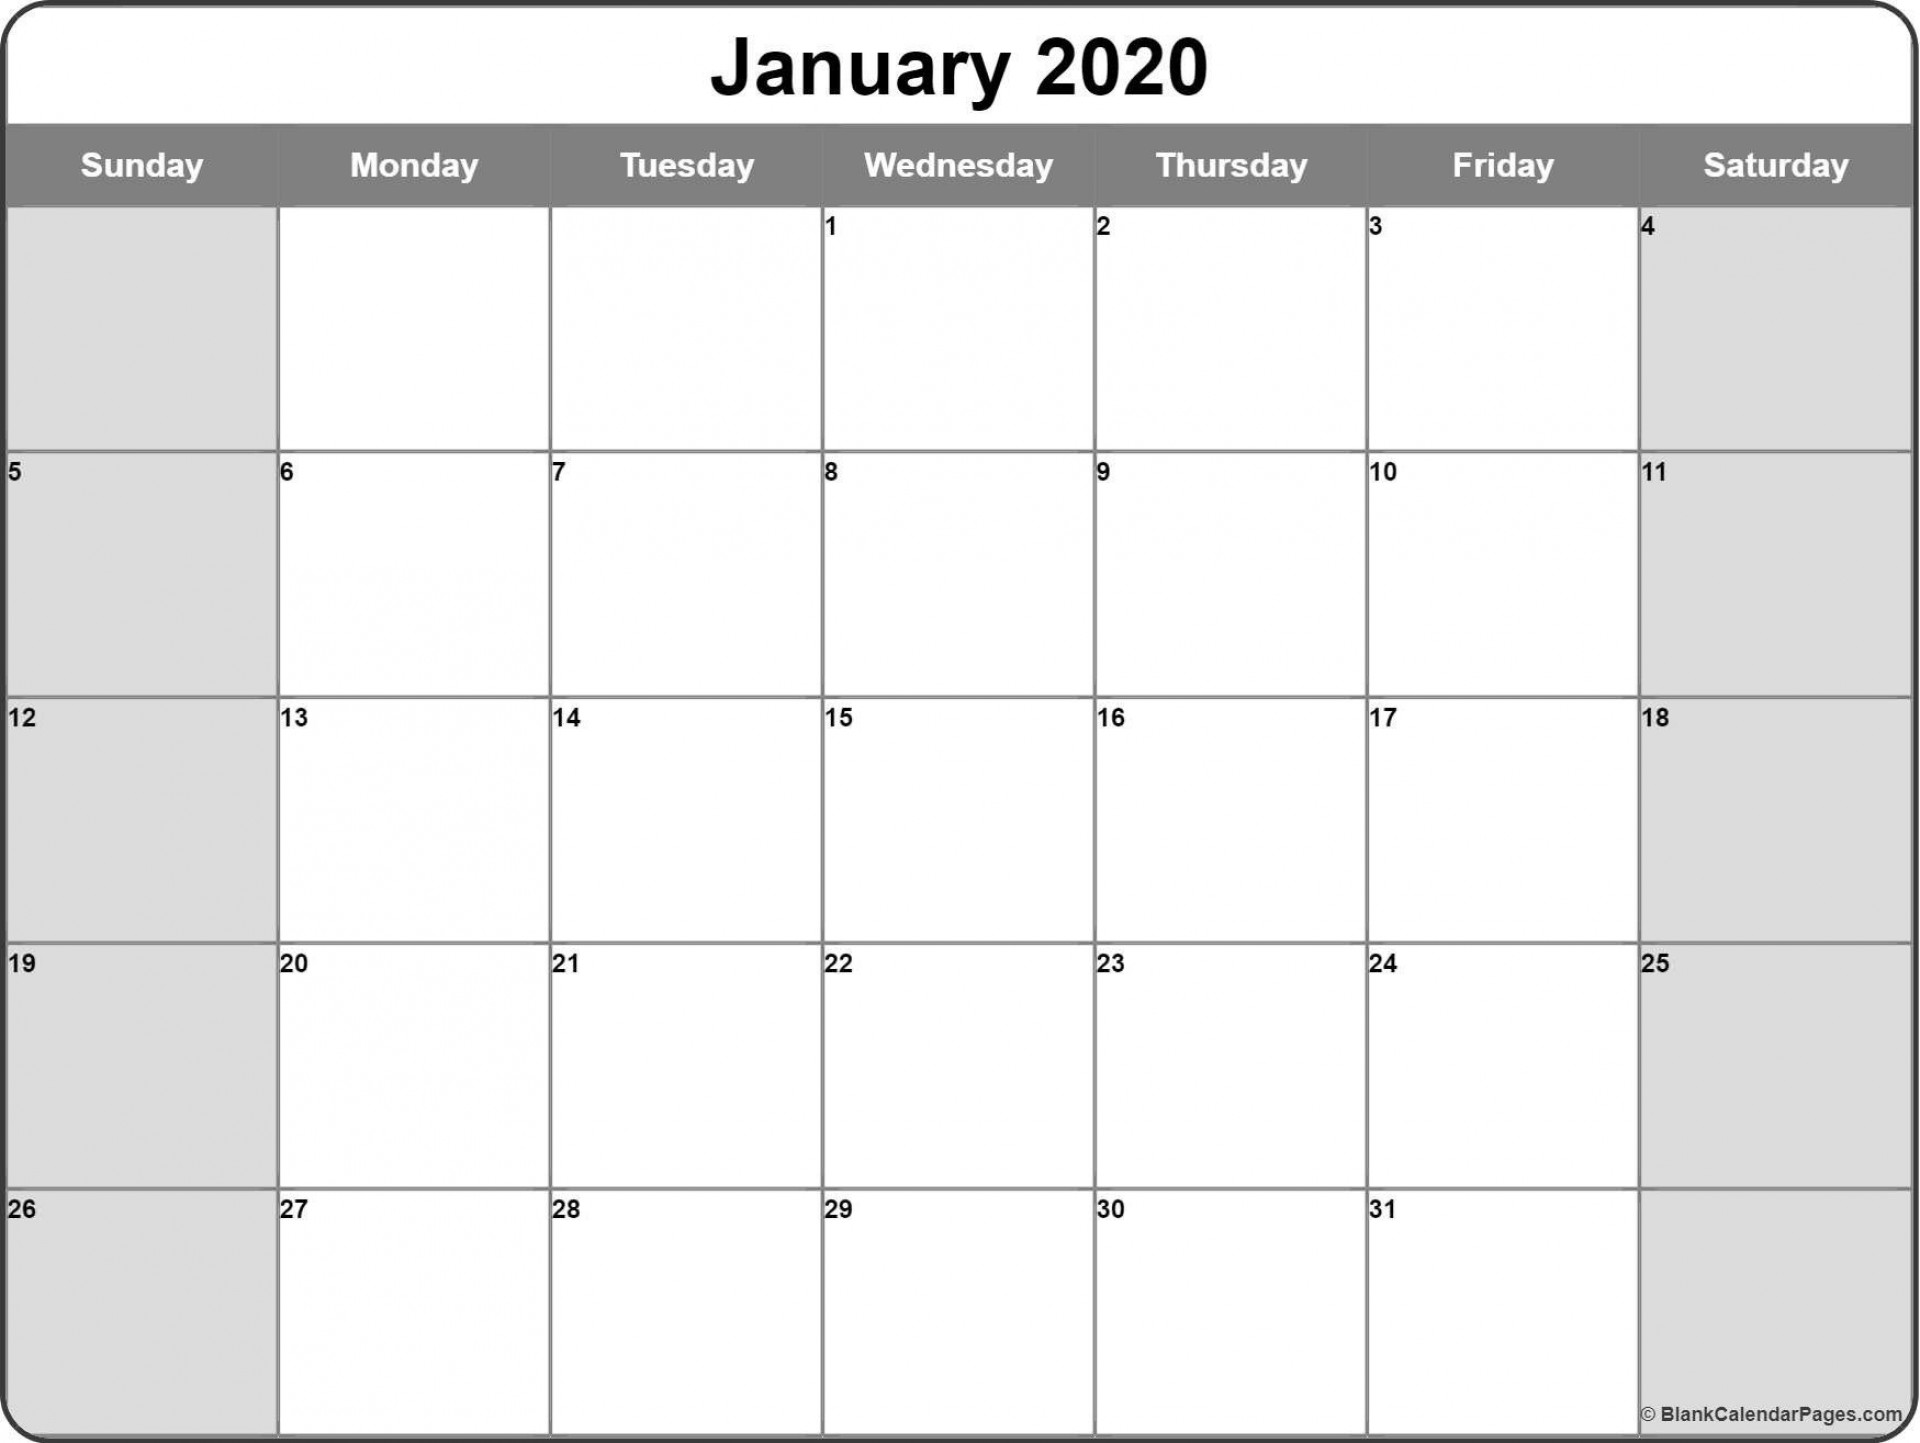 003 Incredible 2020 Monthly Calendar Template Image  Templates Word Australian Free1920